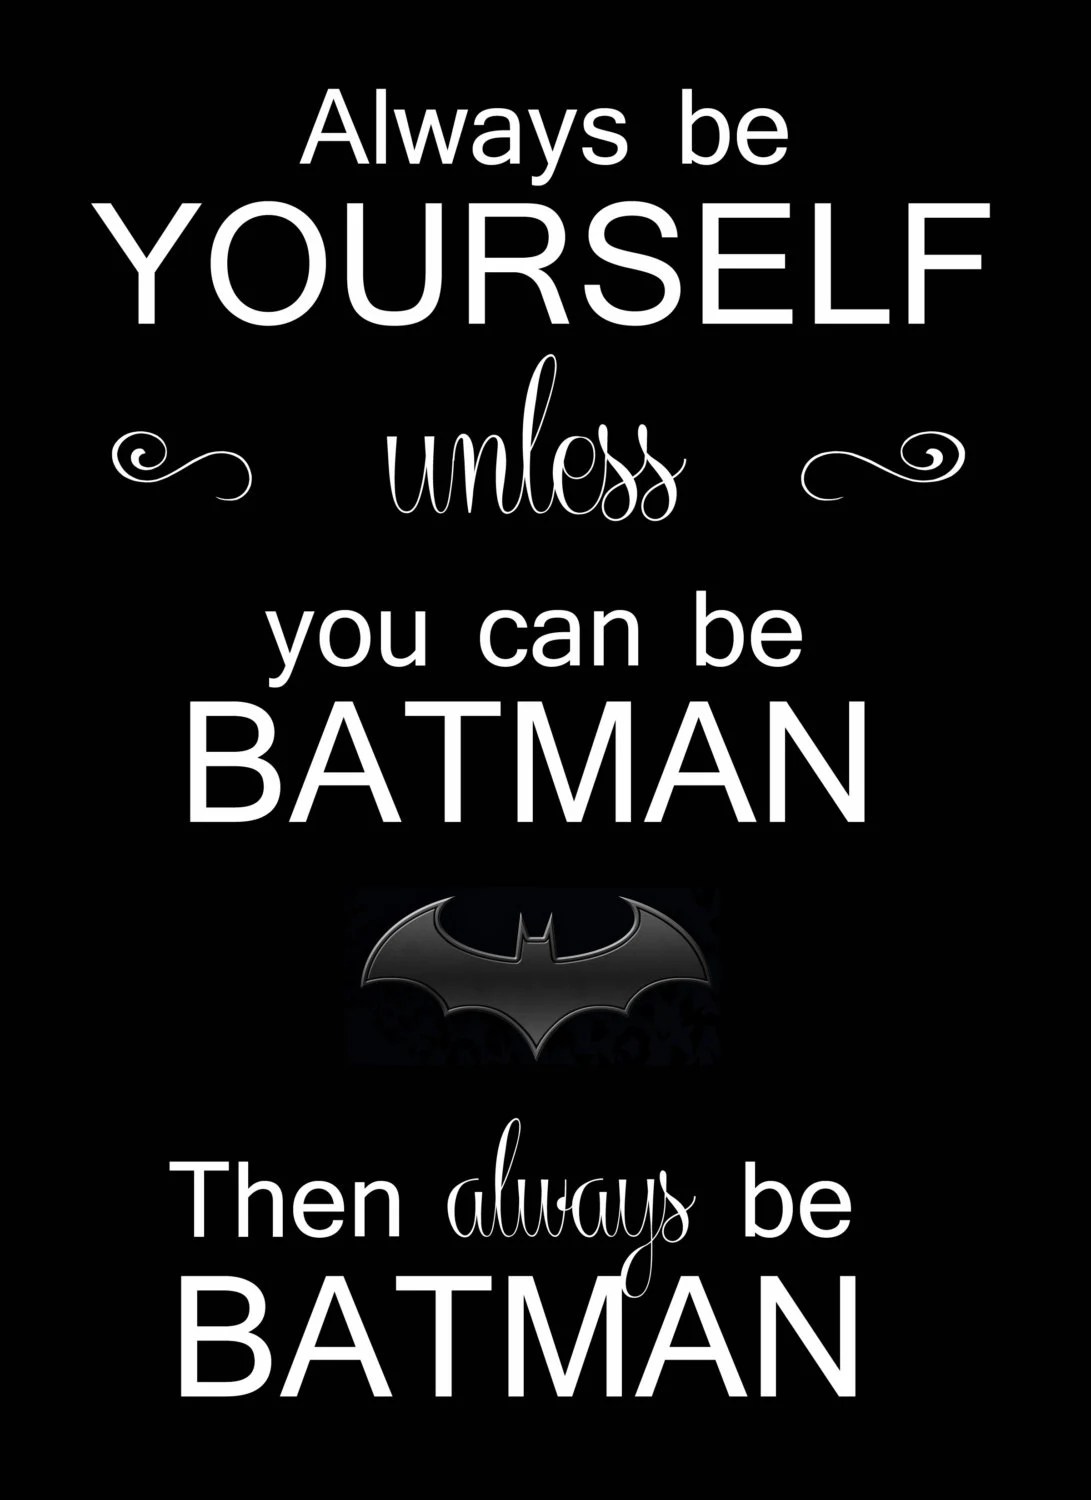 Batman Why Do We Fall Wallpaper Always Be Yourself Unless You Can Be Batman By